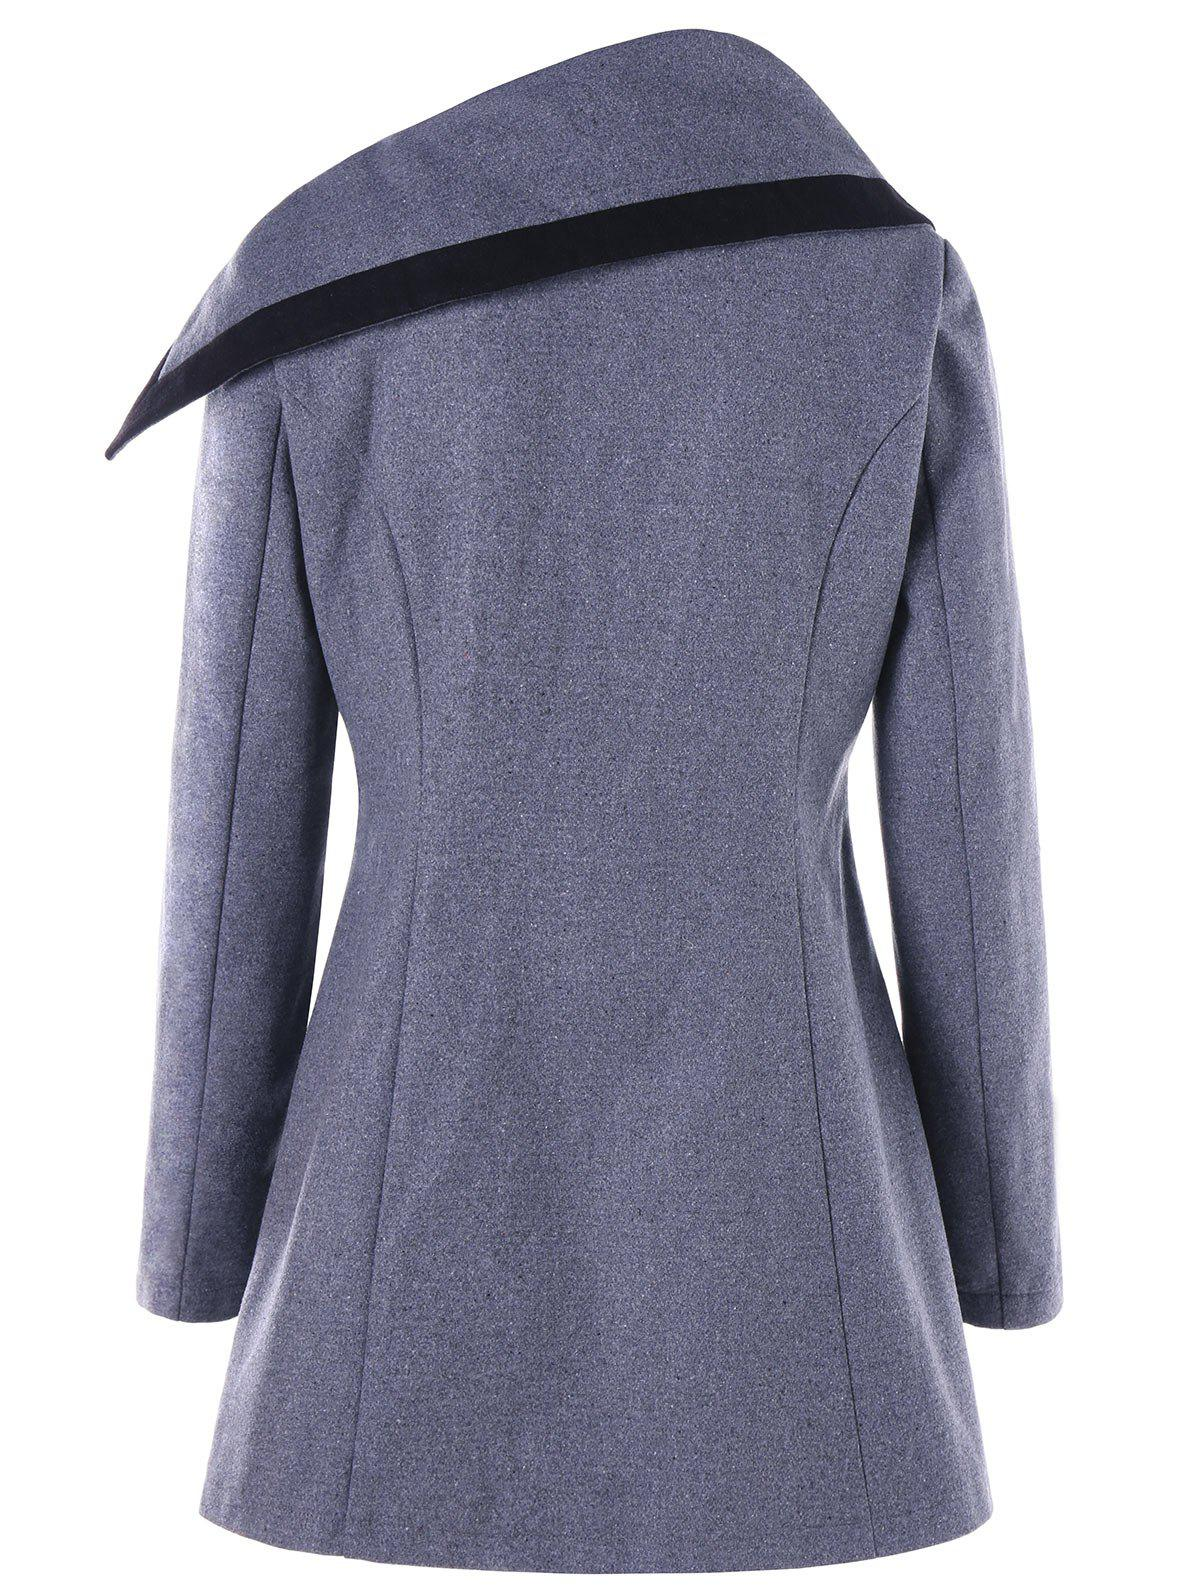 High Low Oblique Button Tunic Wool Coat - GRAY L